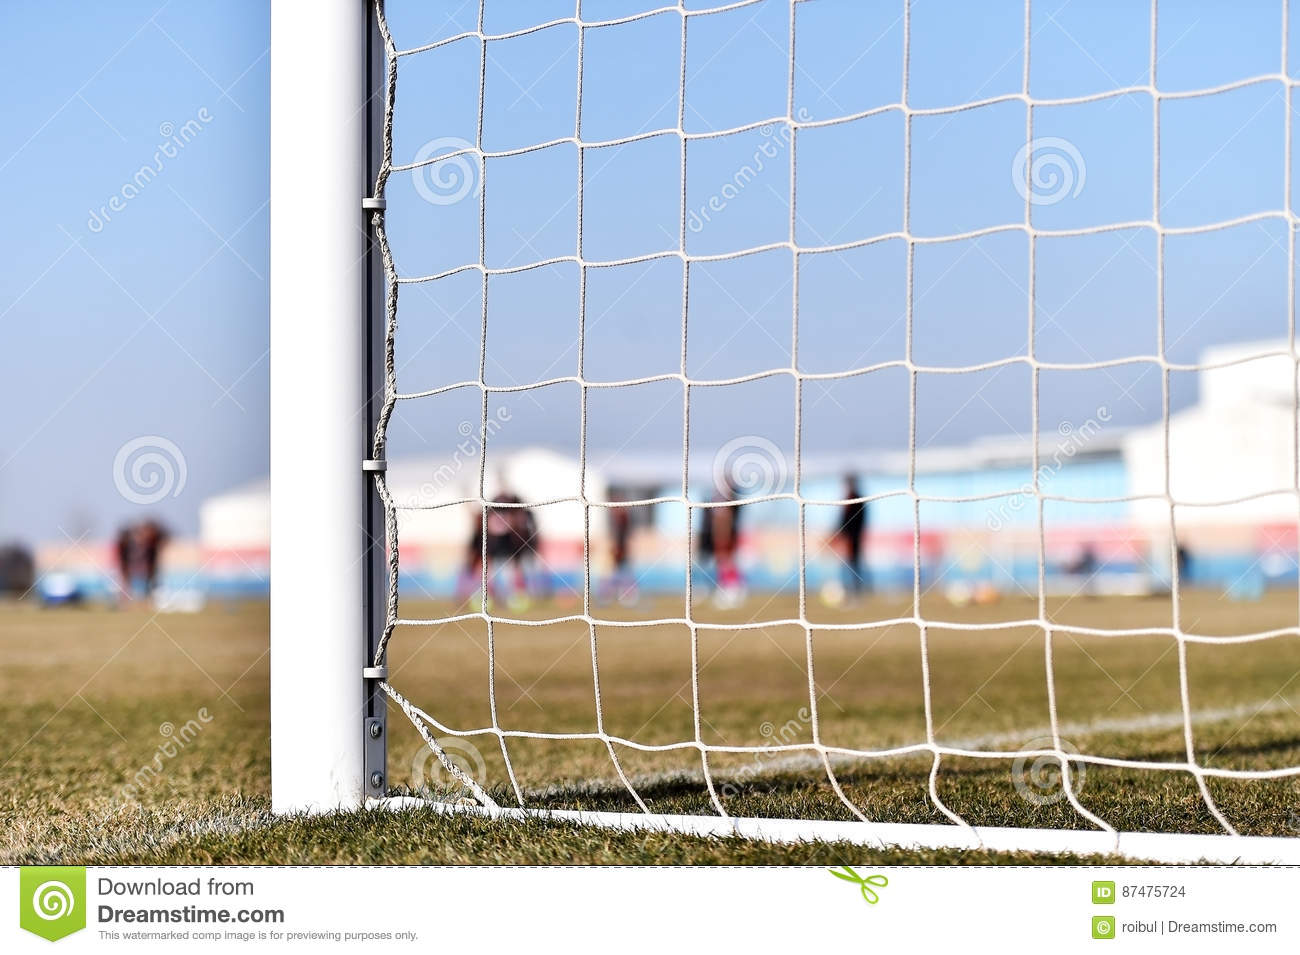 Soccer goalpost and players training